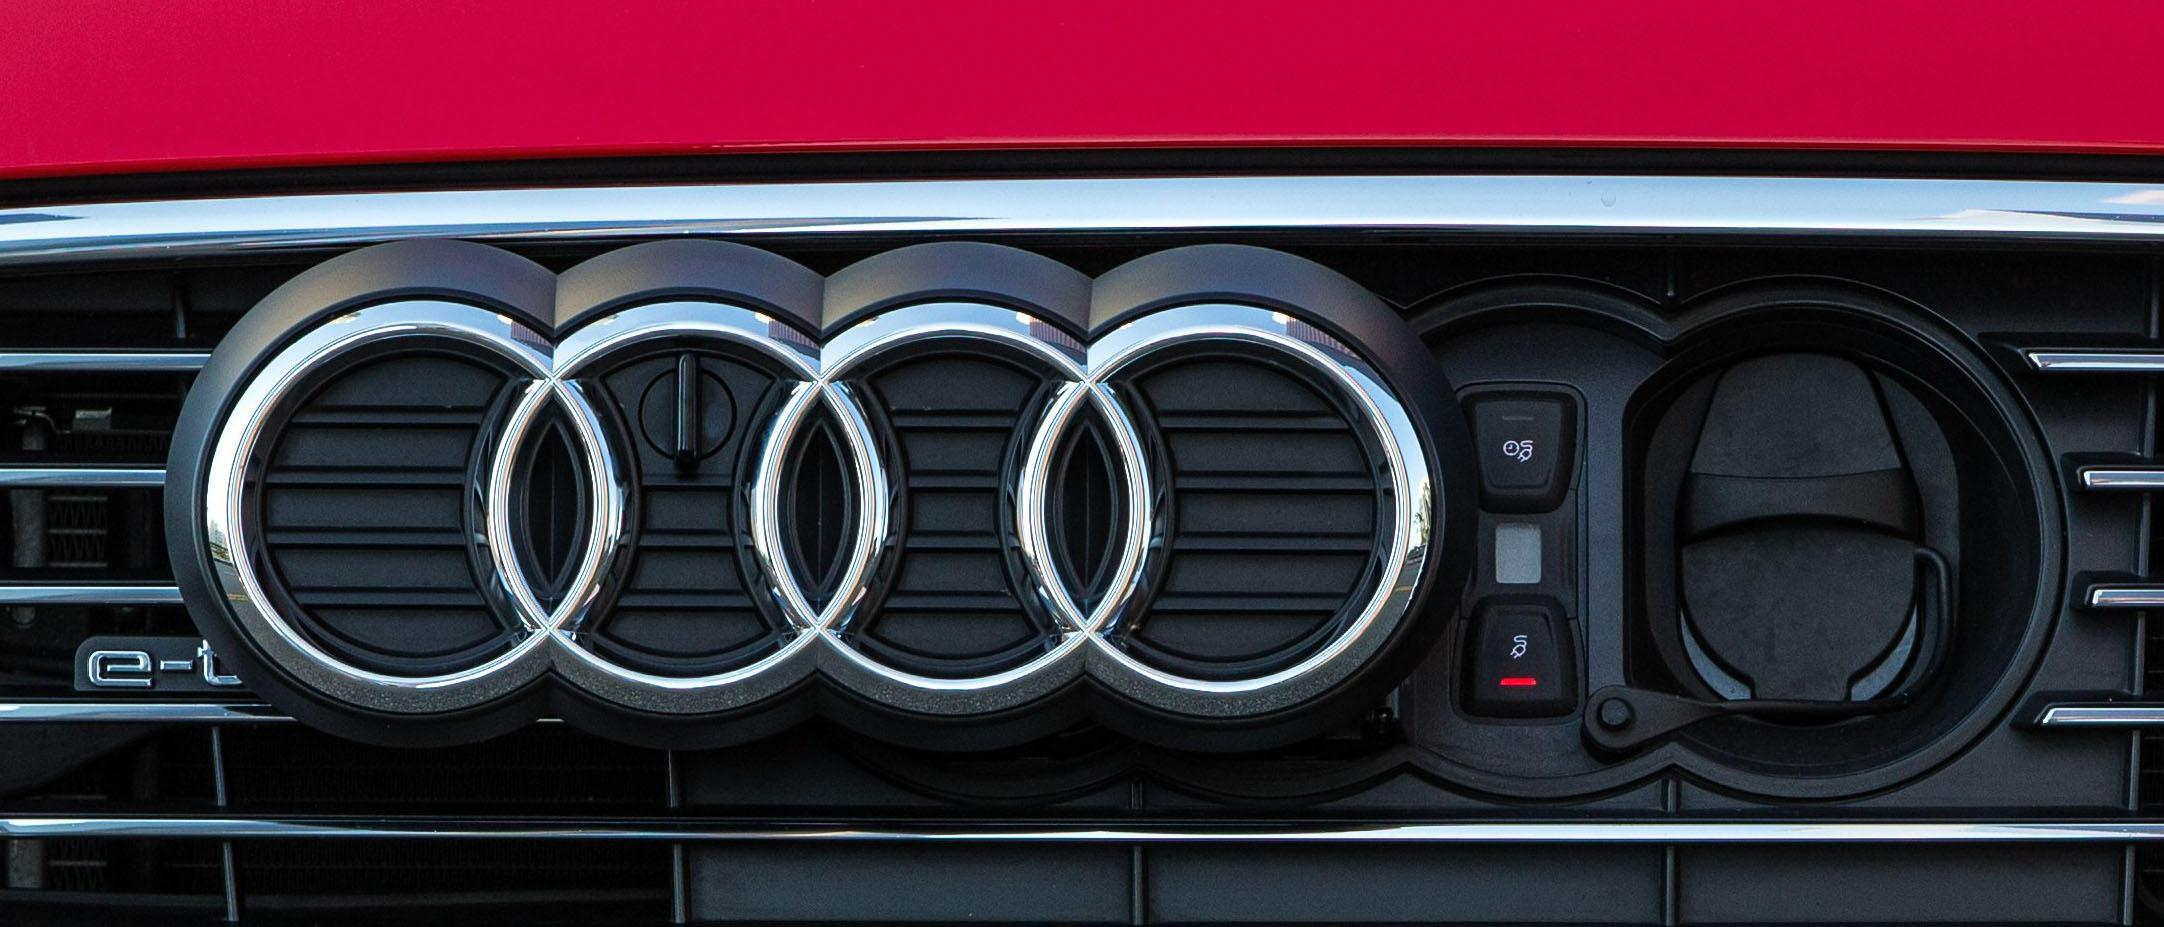 Audi teaming up with LG Chem, Samsung for electric SUV batteries